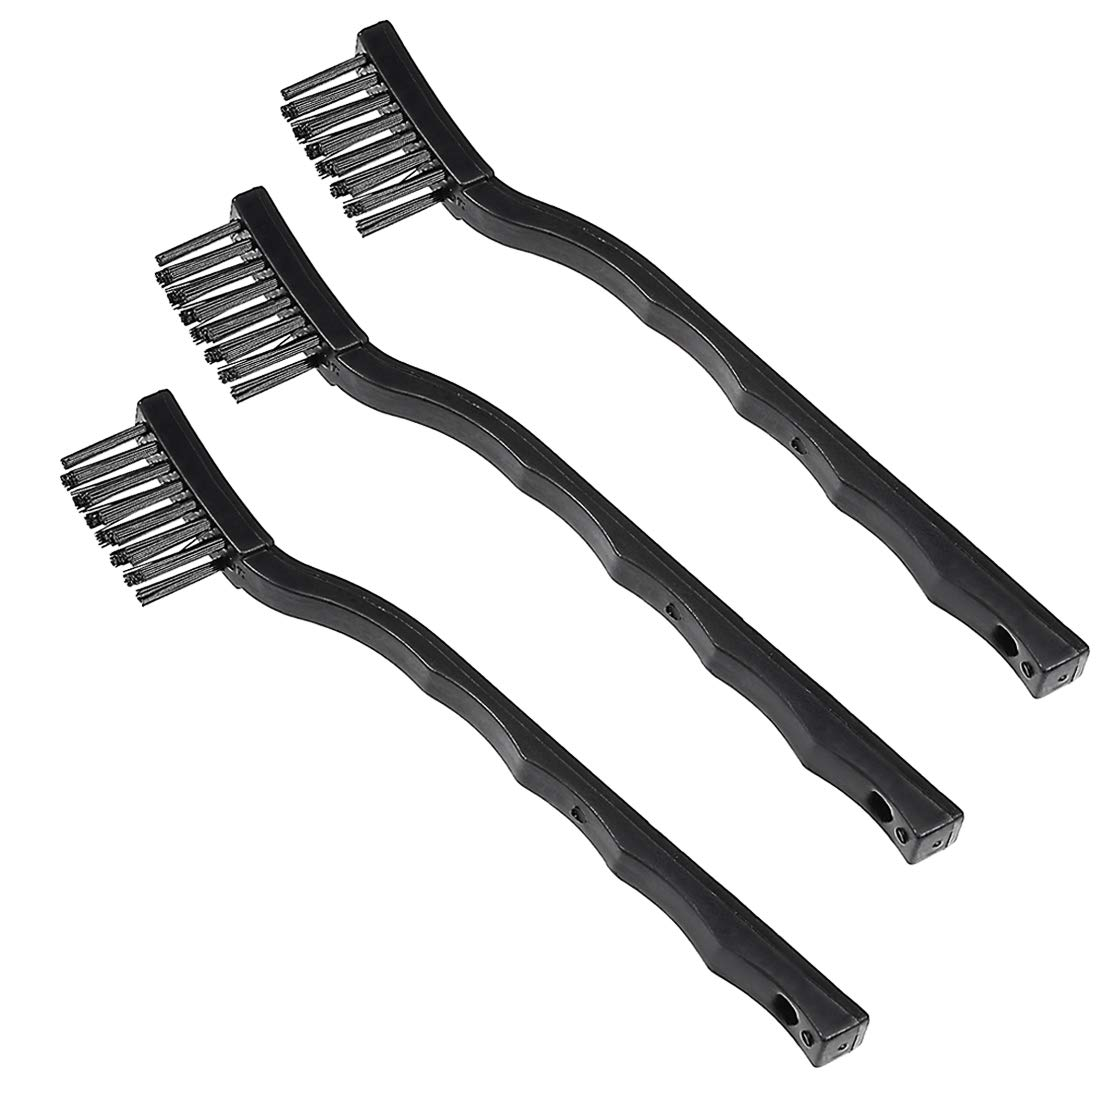 uxcell 3 in 1 Plastic Anti Static Brushes Black ESD Handle Cleaning Keyboard Brush a18061300ux0053